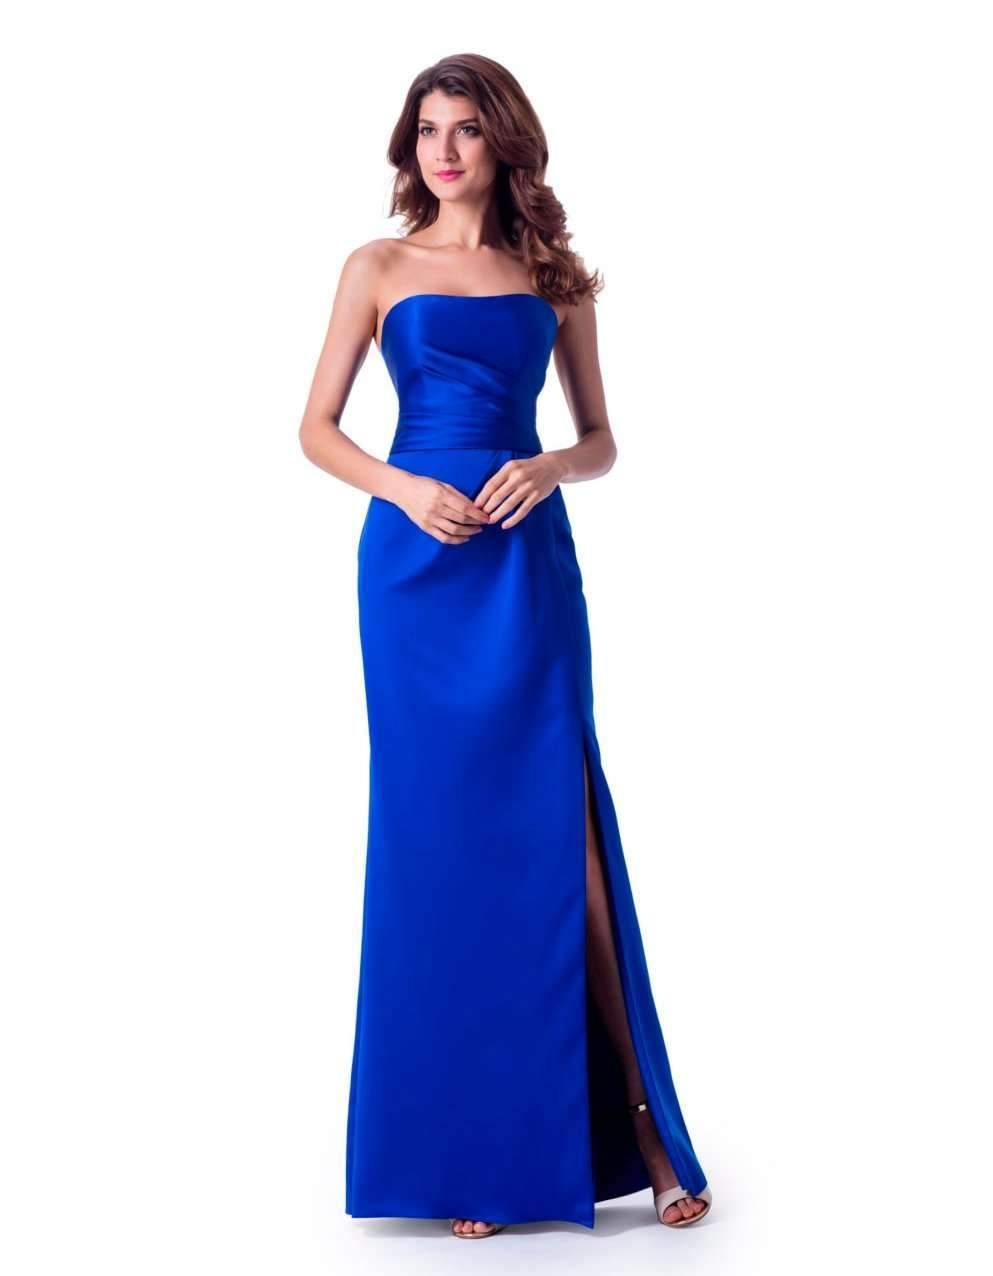 UK10 COBALT - AVA - SALE - Adore Bridal and Occasion Wear